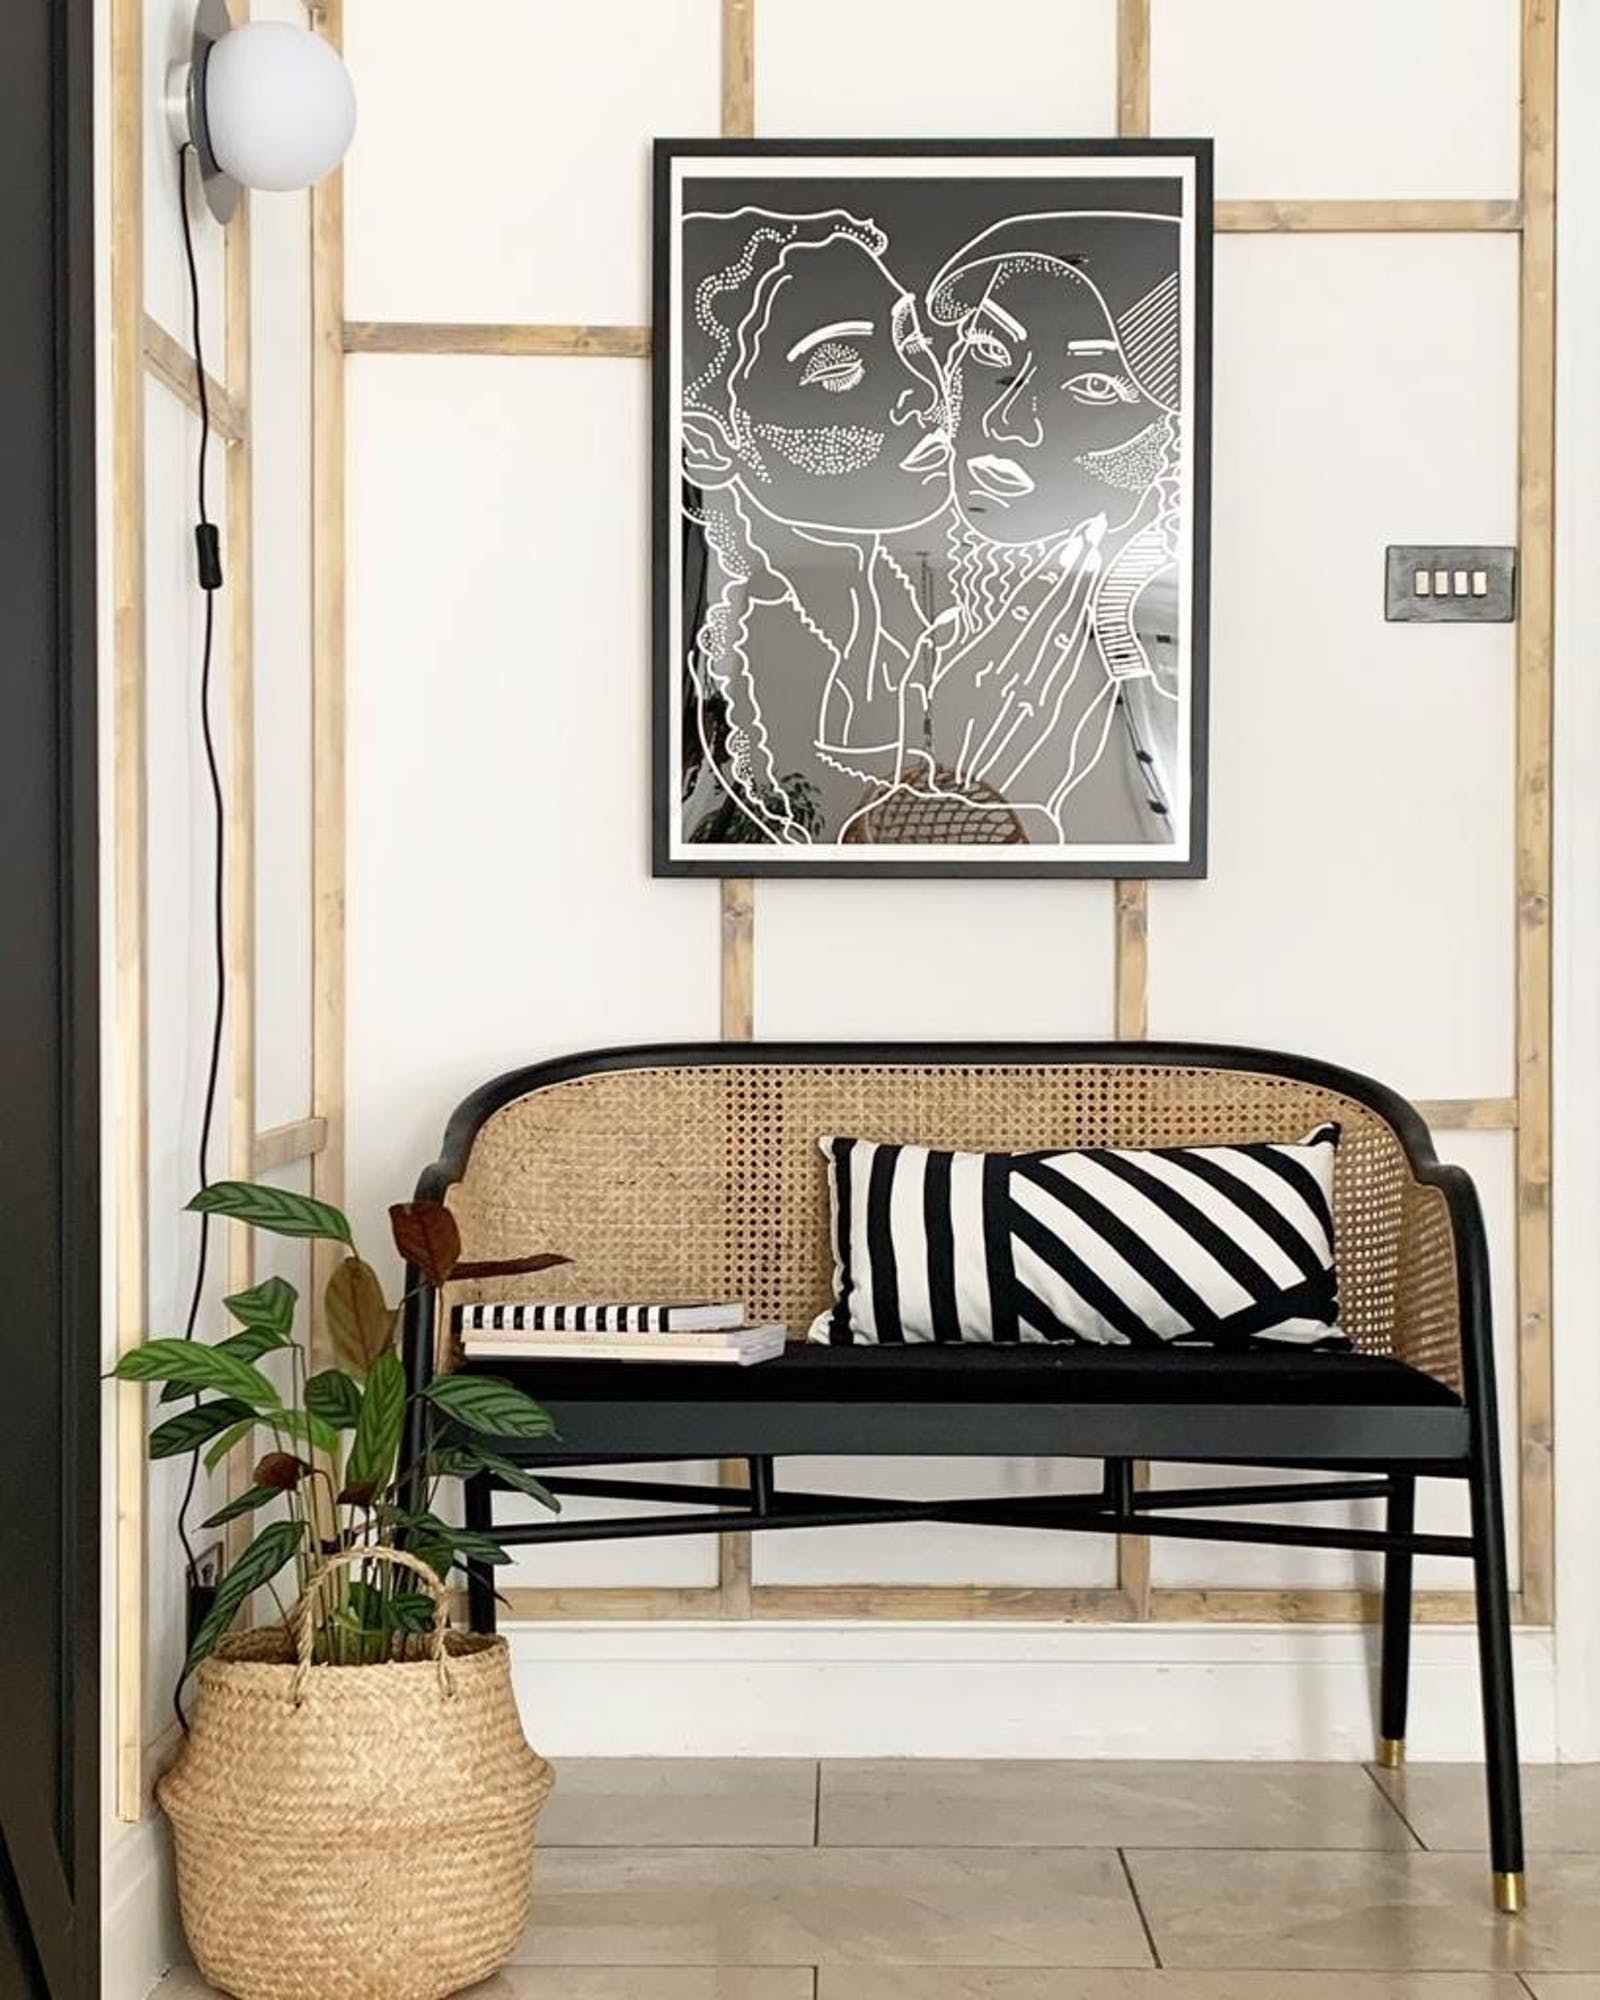 Rattan chair against a white and wooden panelling wall with a black and white patterned cushion on top